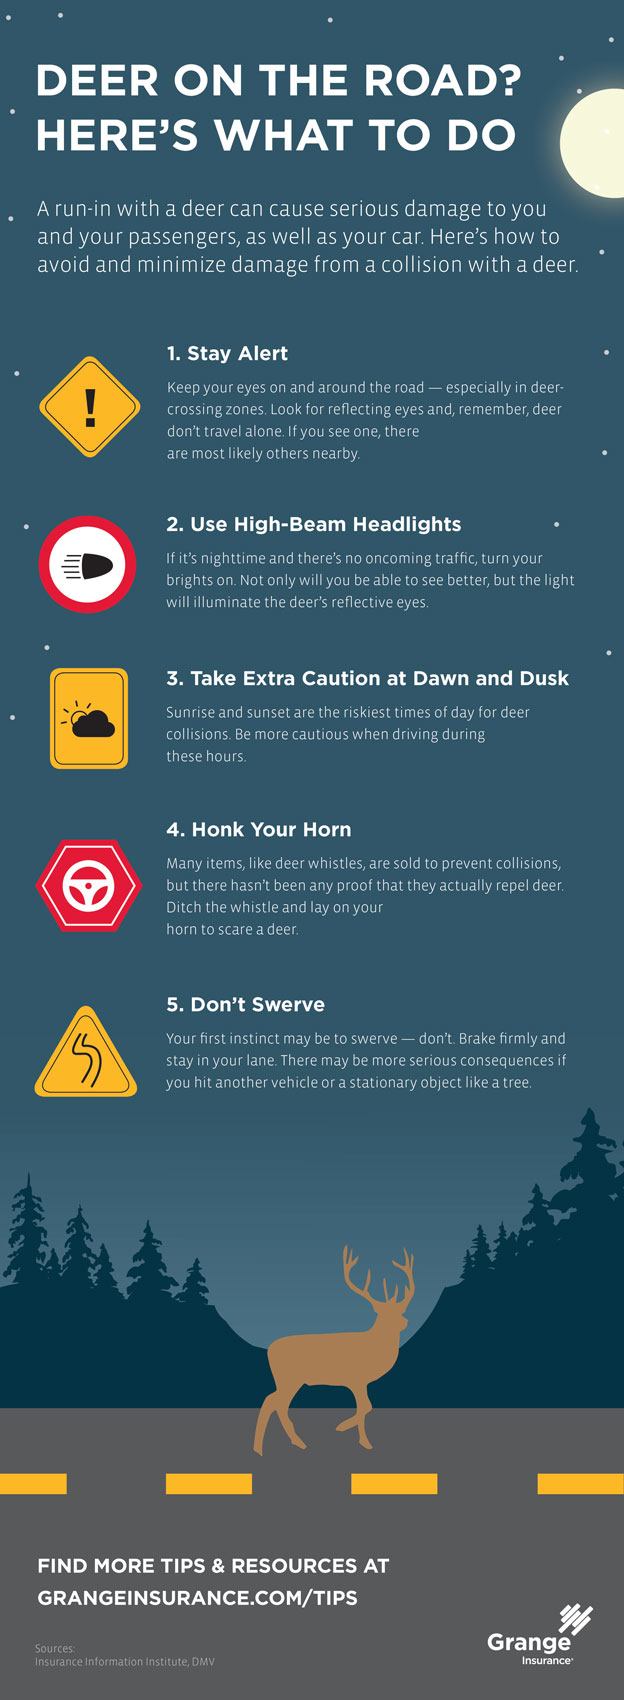 Deer on the road? Here's what to do